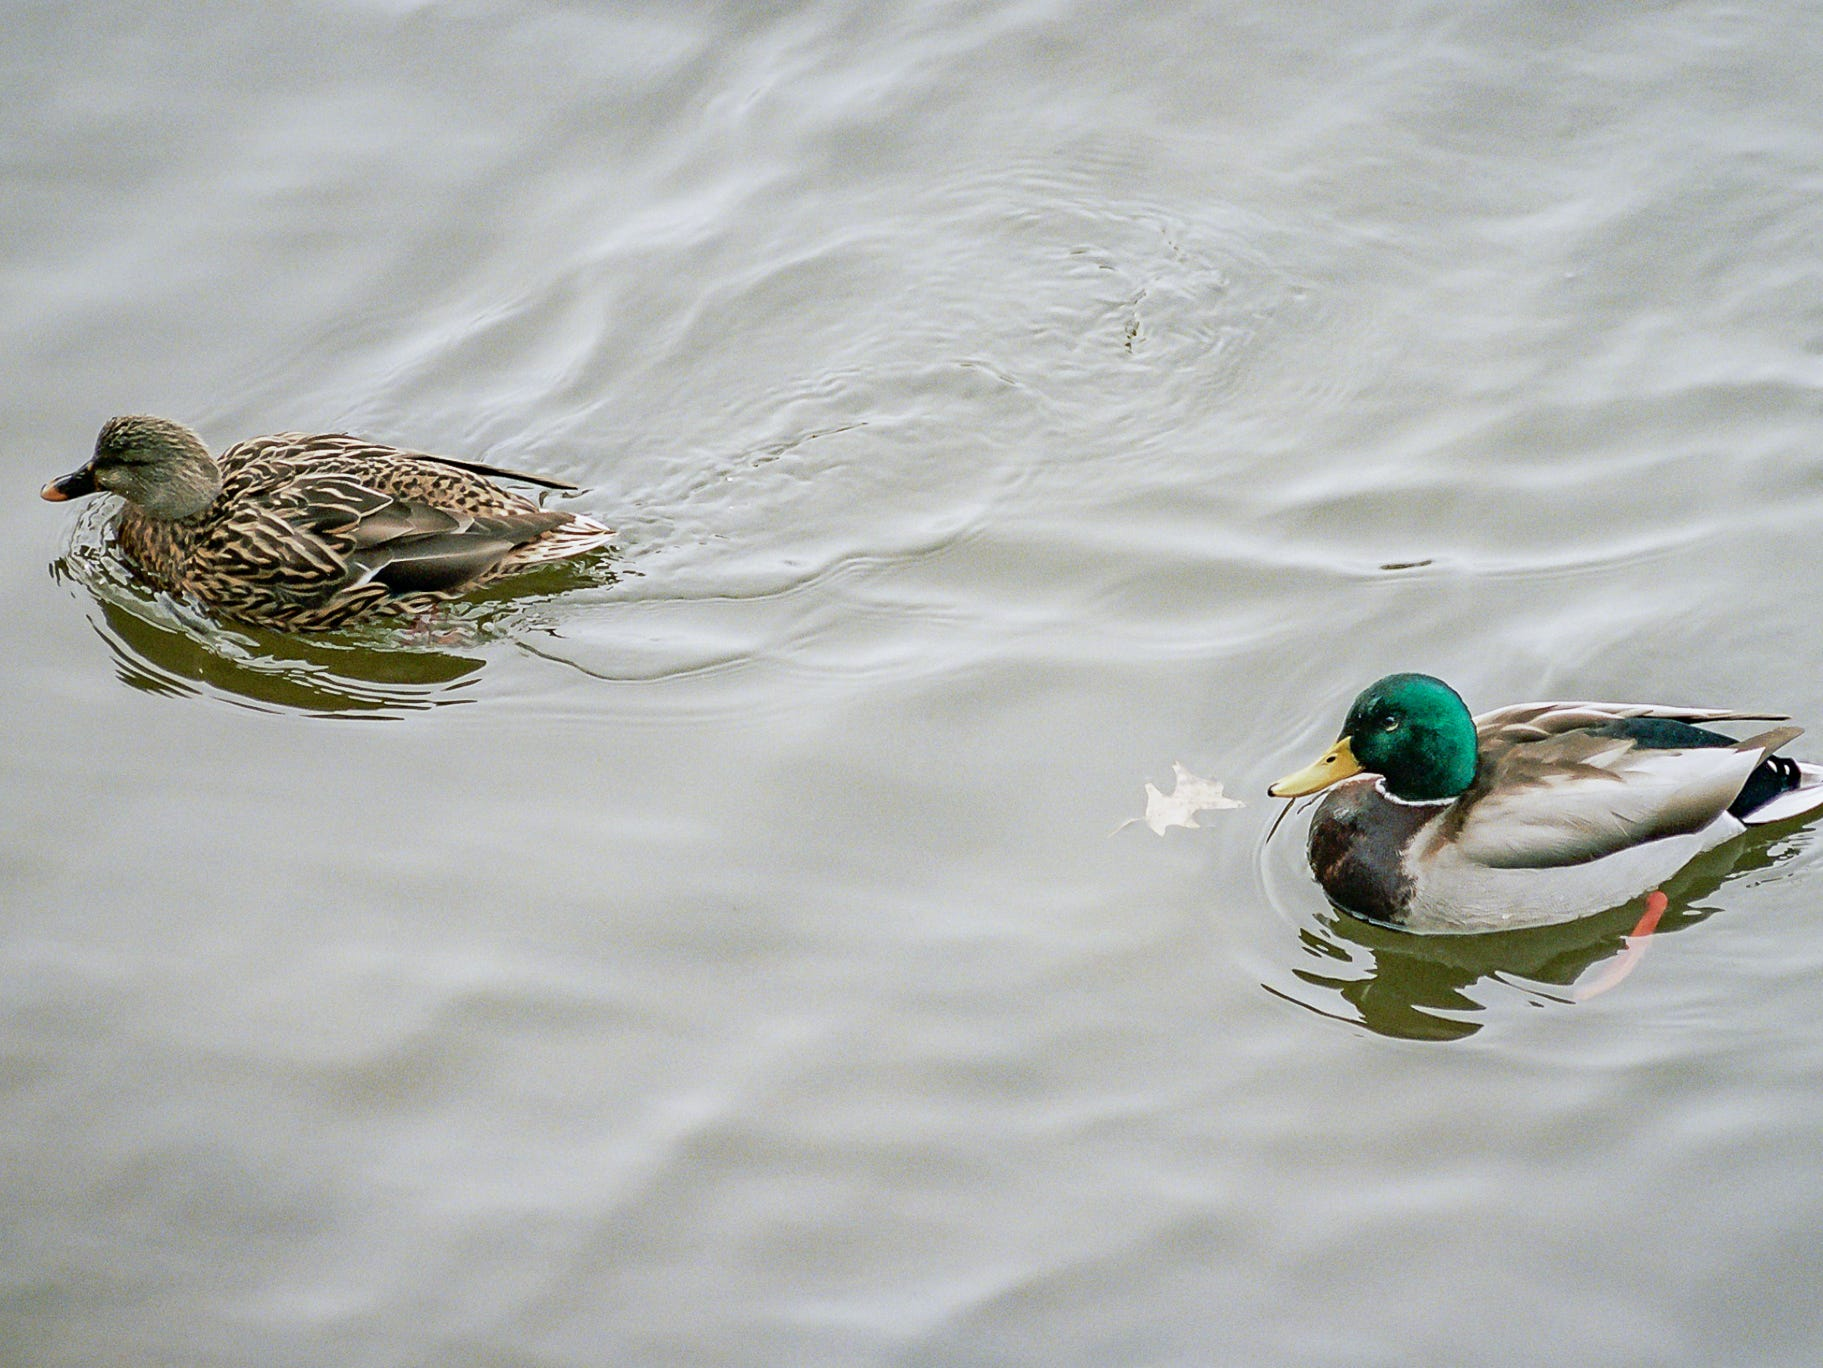 A gadwall and a mallard swimming in the Codorus Creek. [Nikon FA] [Kodak Portra 400]